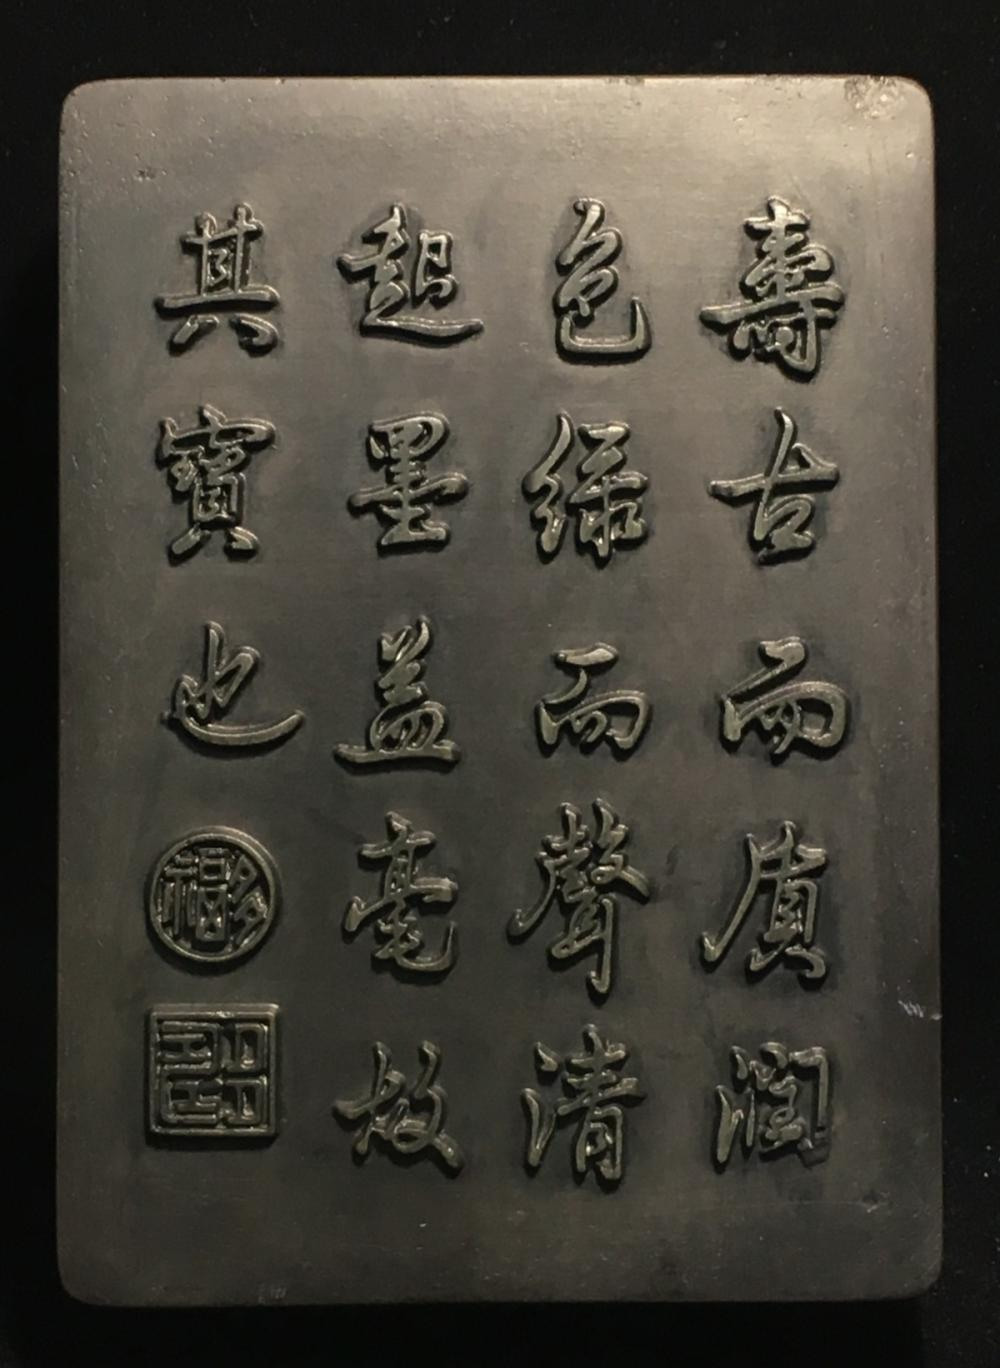 A SET OF SONGHUA STONE POETRY CARVED INK SLAB